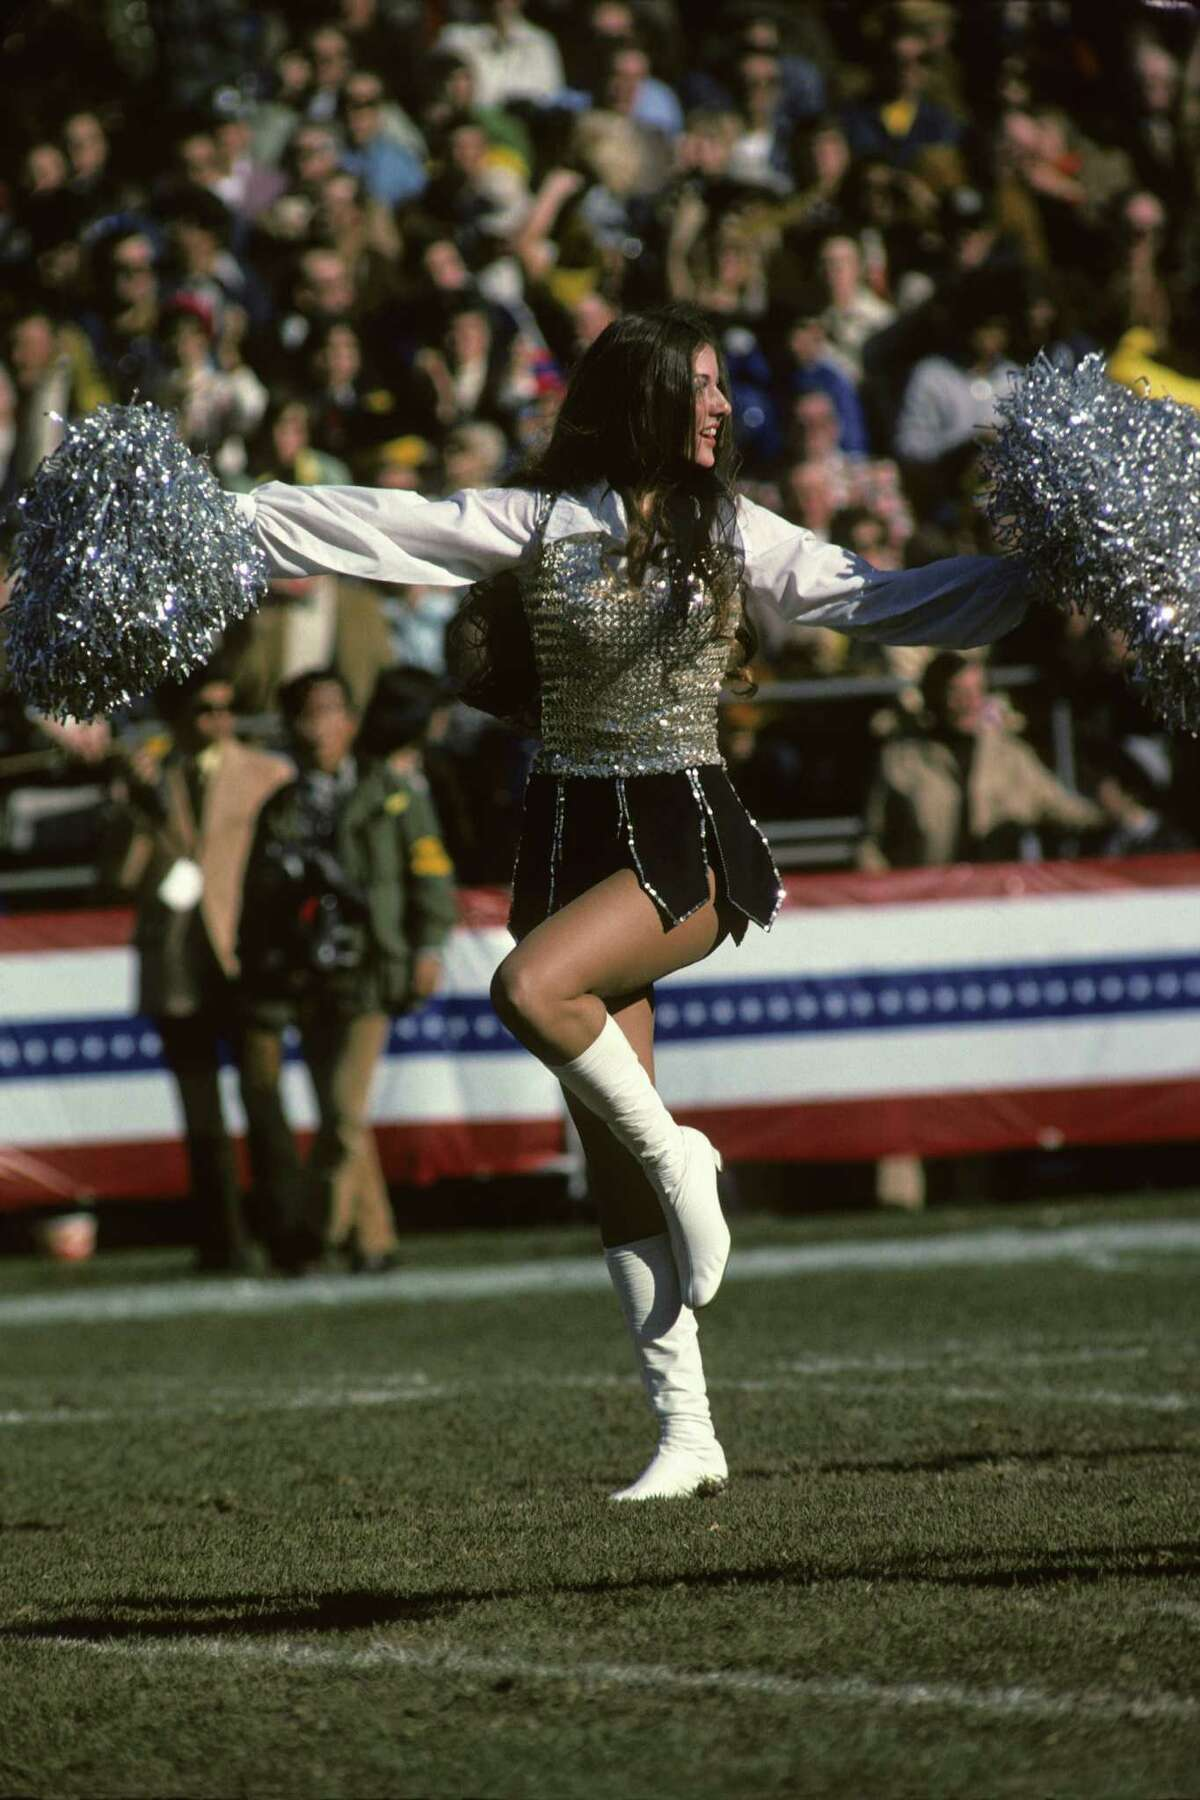 NEW ORLEANS, LA - JANUARY 12, 1975: A Raiderette cheerleader, for the Oakland Raiders, on the sidelines during Super Bowl IX on January 12, 1975 between the Pittsburgh Steelers and Minnesota Vikings at Tulane Stadium in New Orleans, Louisiana. Raiderette75-04188 (Photo by: Diamond Images/Getty Images) *** Local Caption *** Raiderette